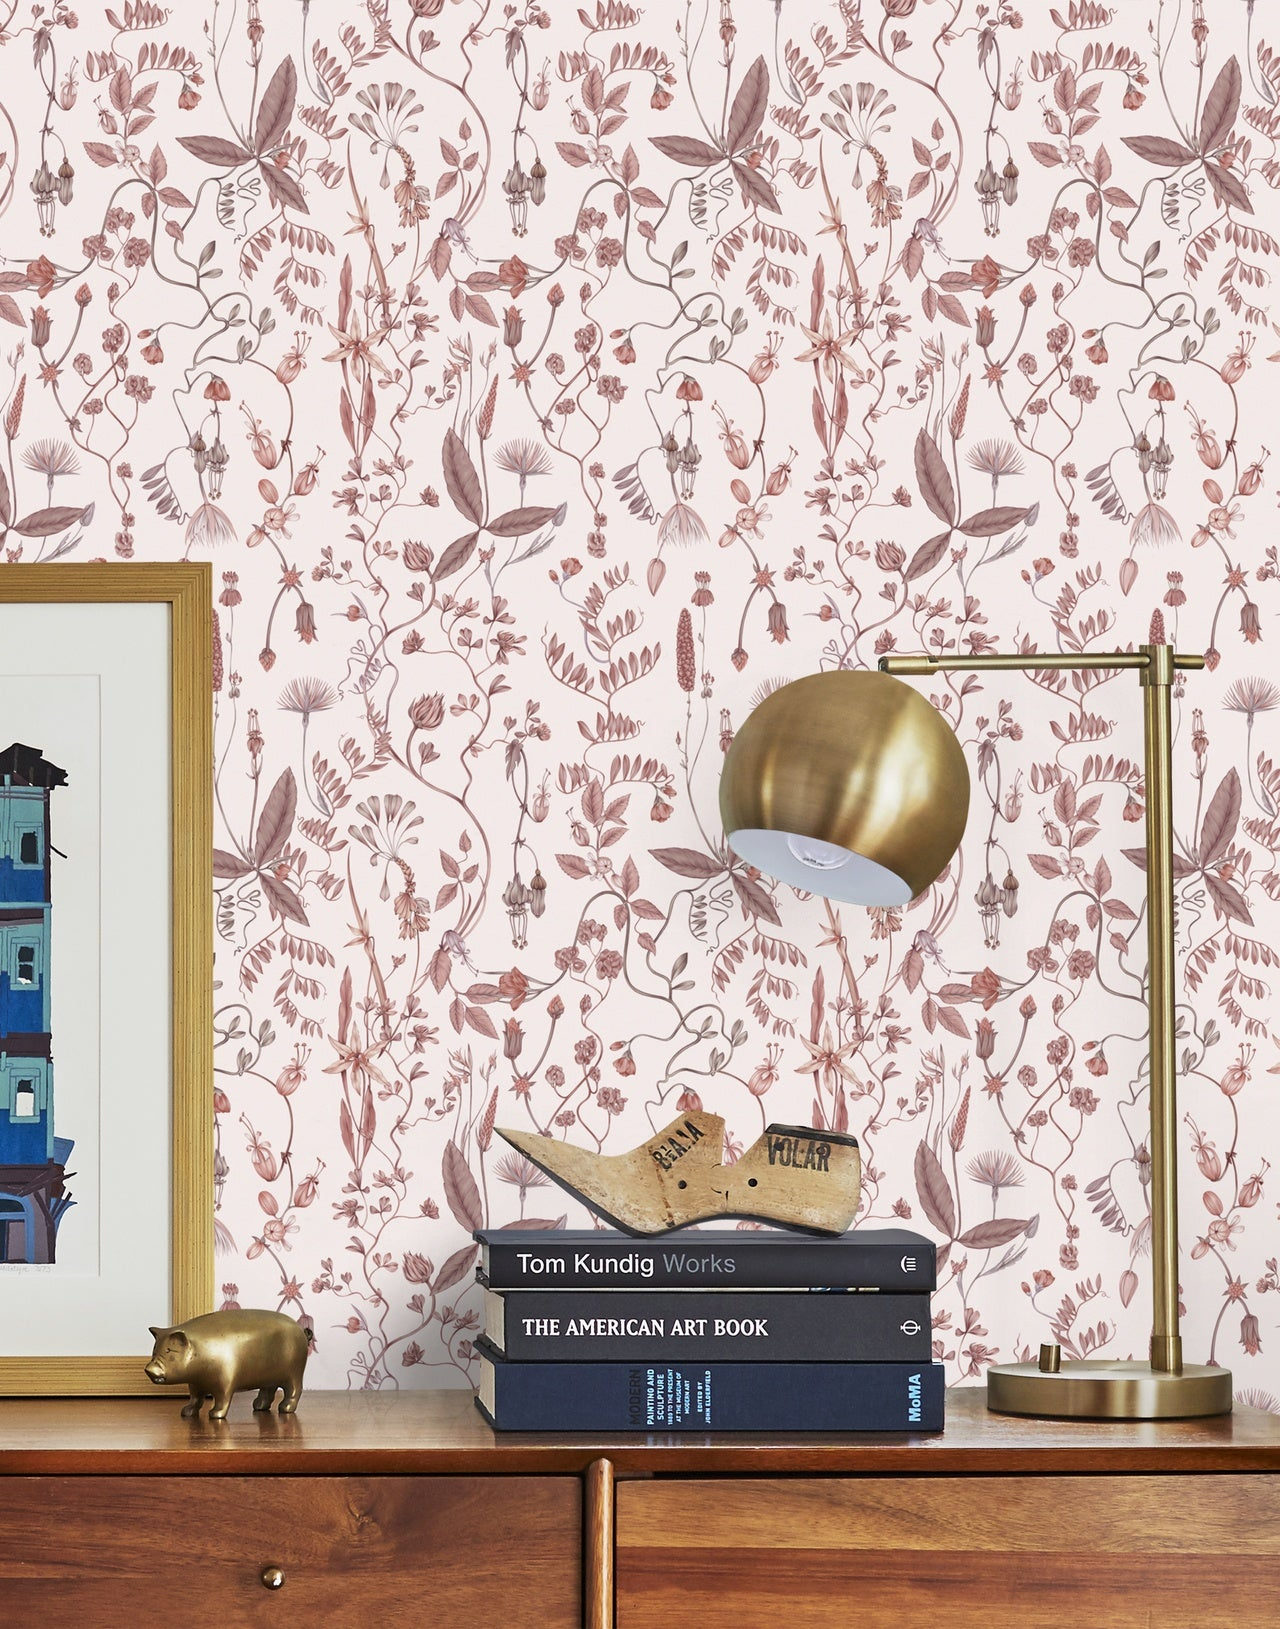 Sonoma Blush wallpaper | Lisel Jane Ashlock collection | modern floral wallpapers and murals | Hygge & West